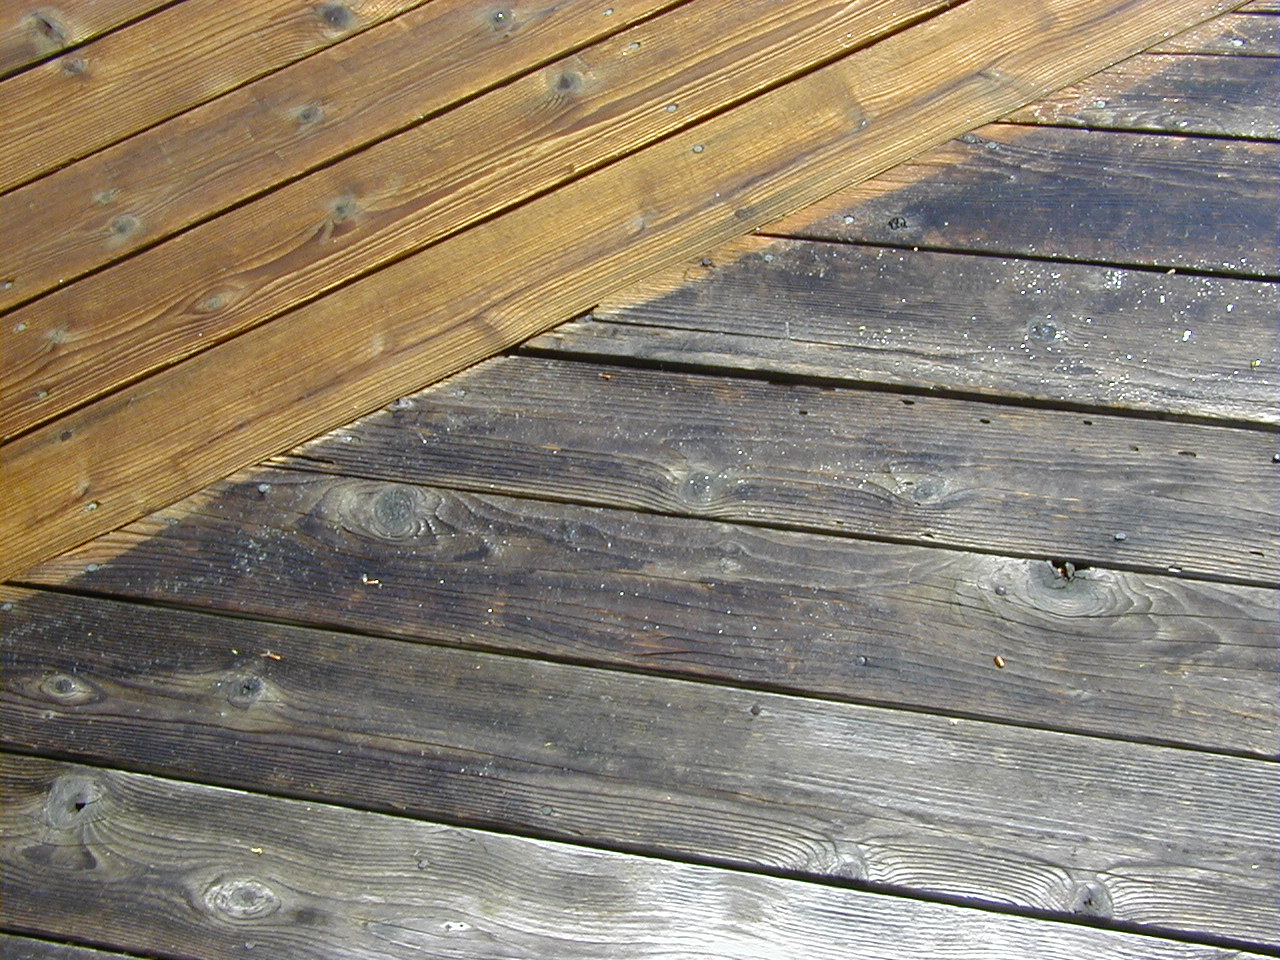 Professional grade deck cleaning chemicals